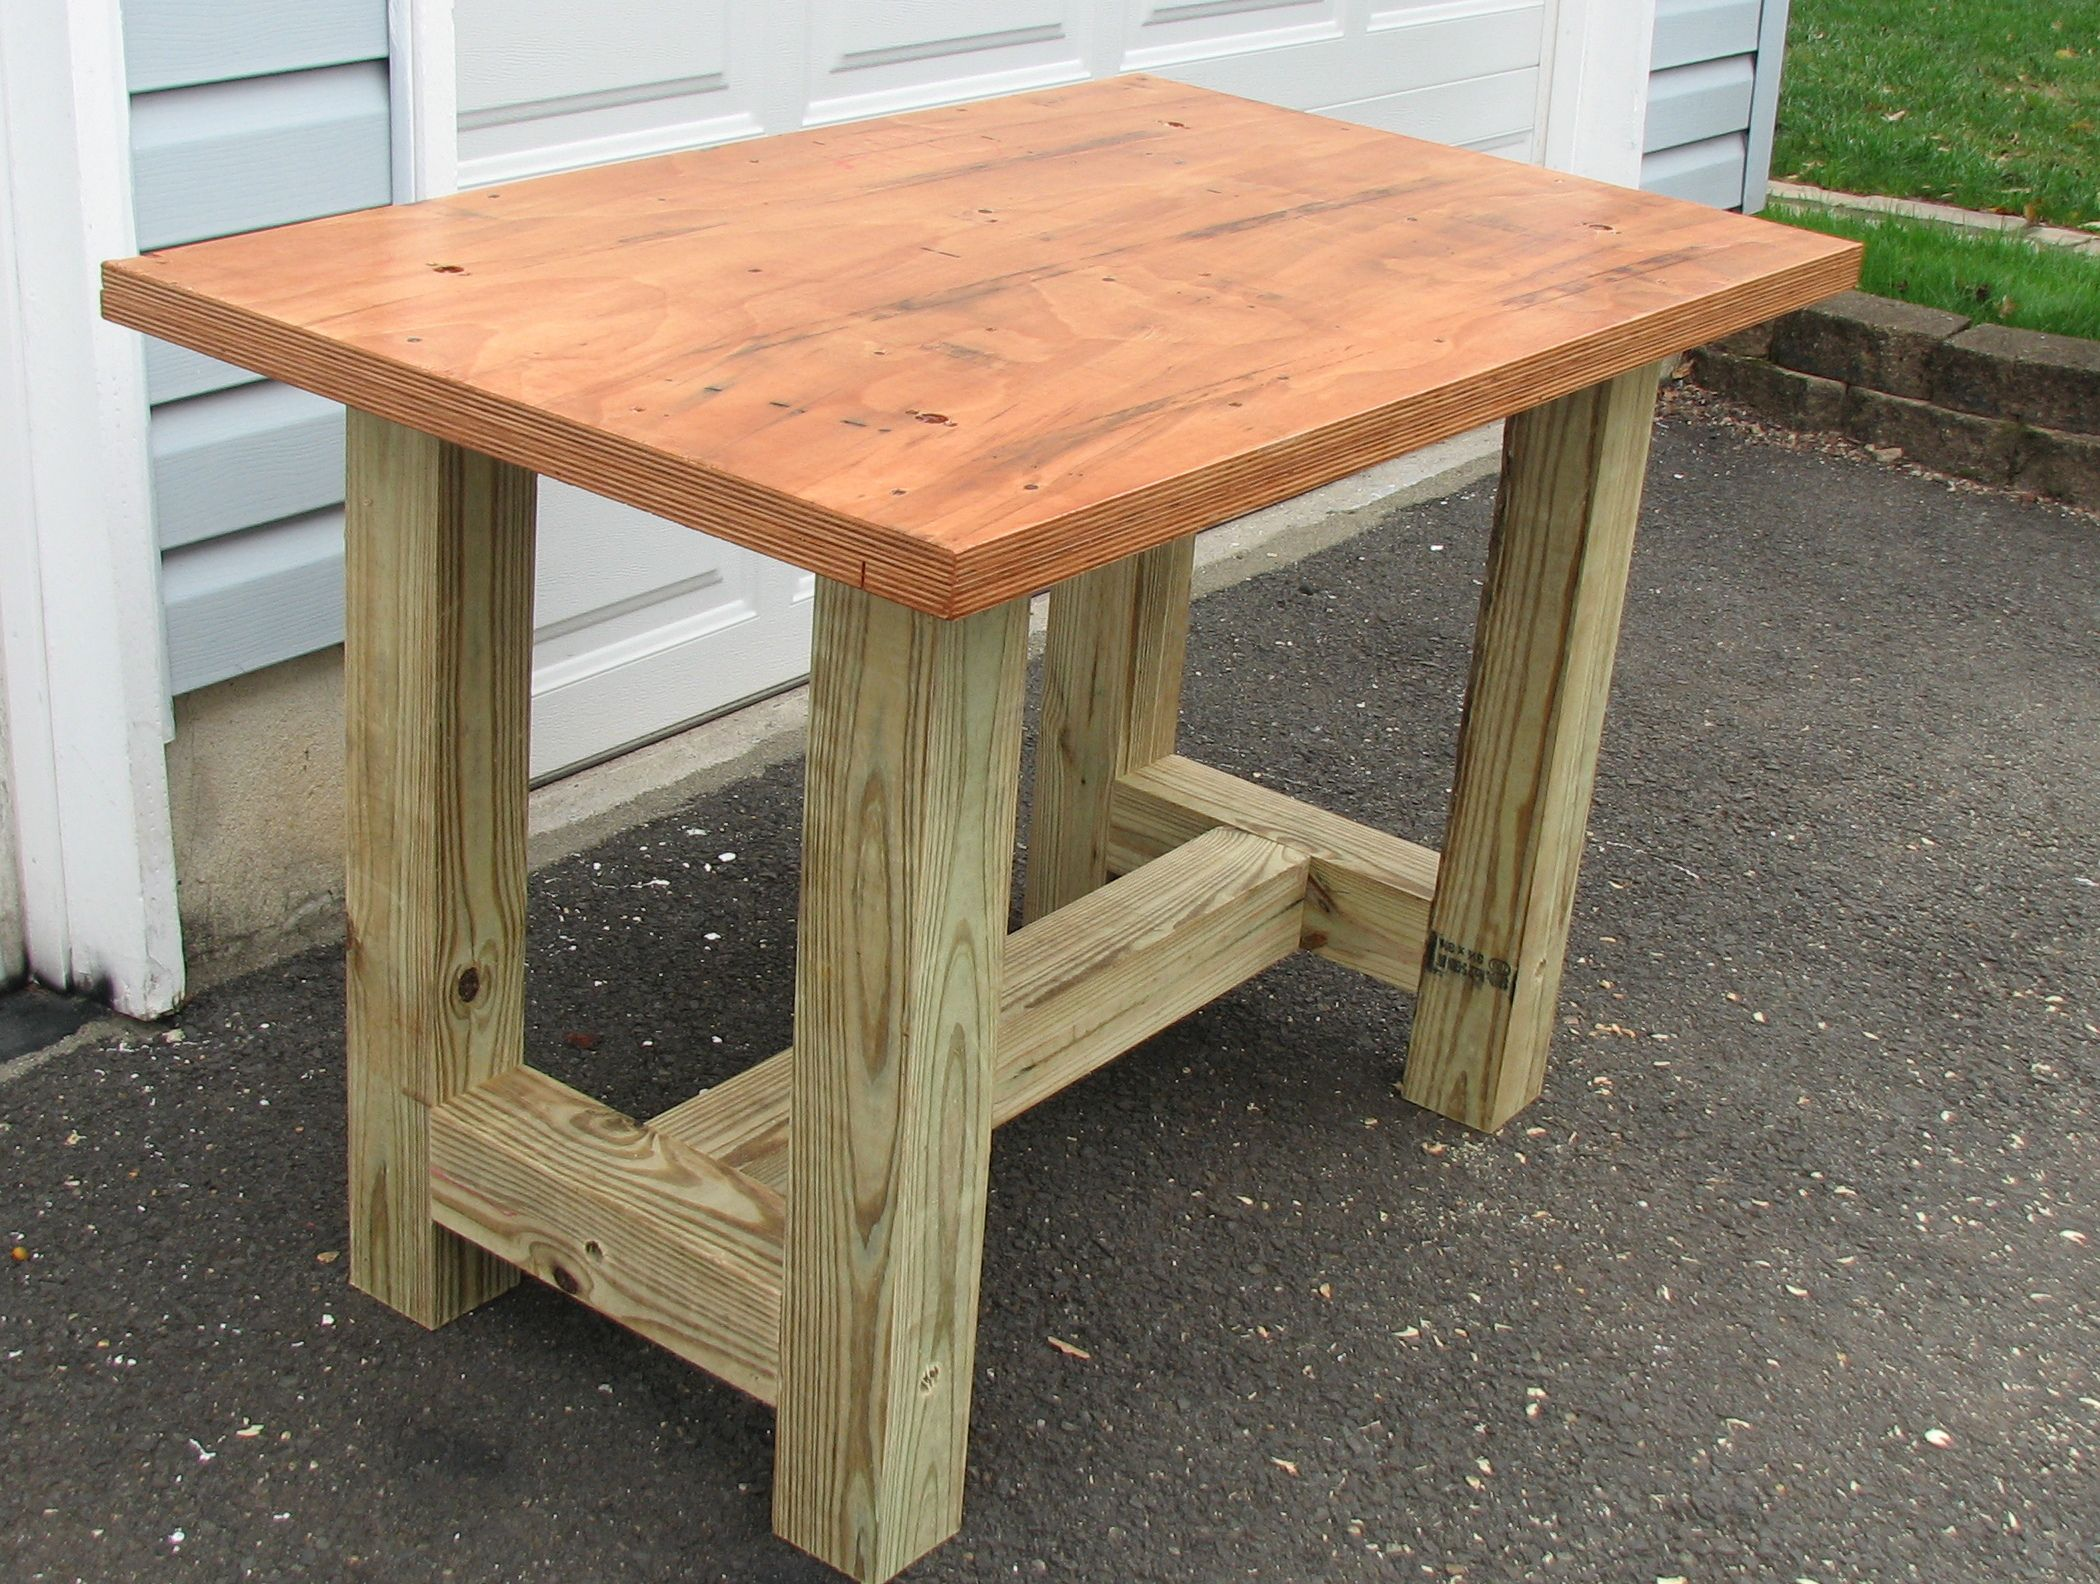 Workshop Work Table Featured Instructables Wood Woodworking Chair Work Table